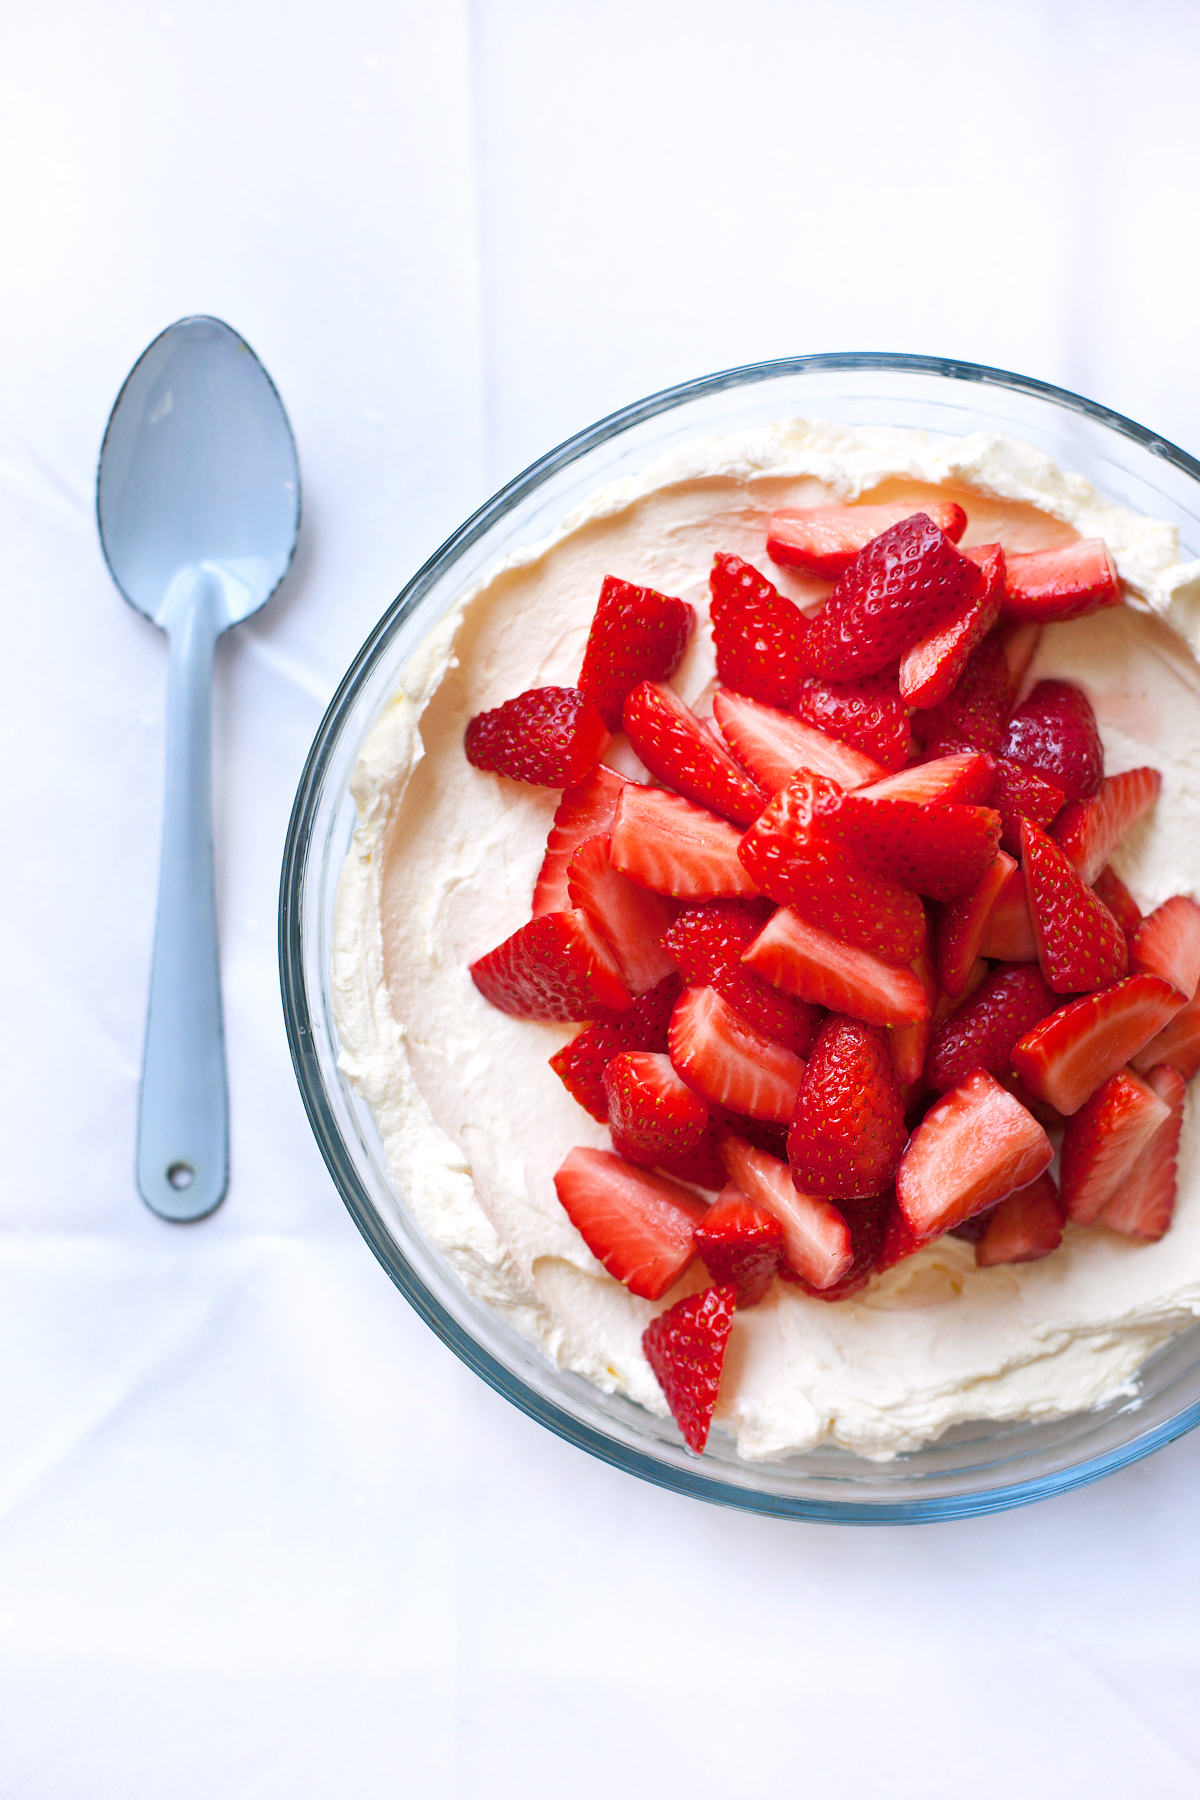 Strawberries and Cream Dessert with Mascarpone Cheese